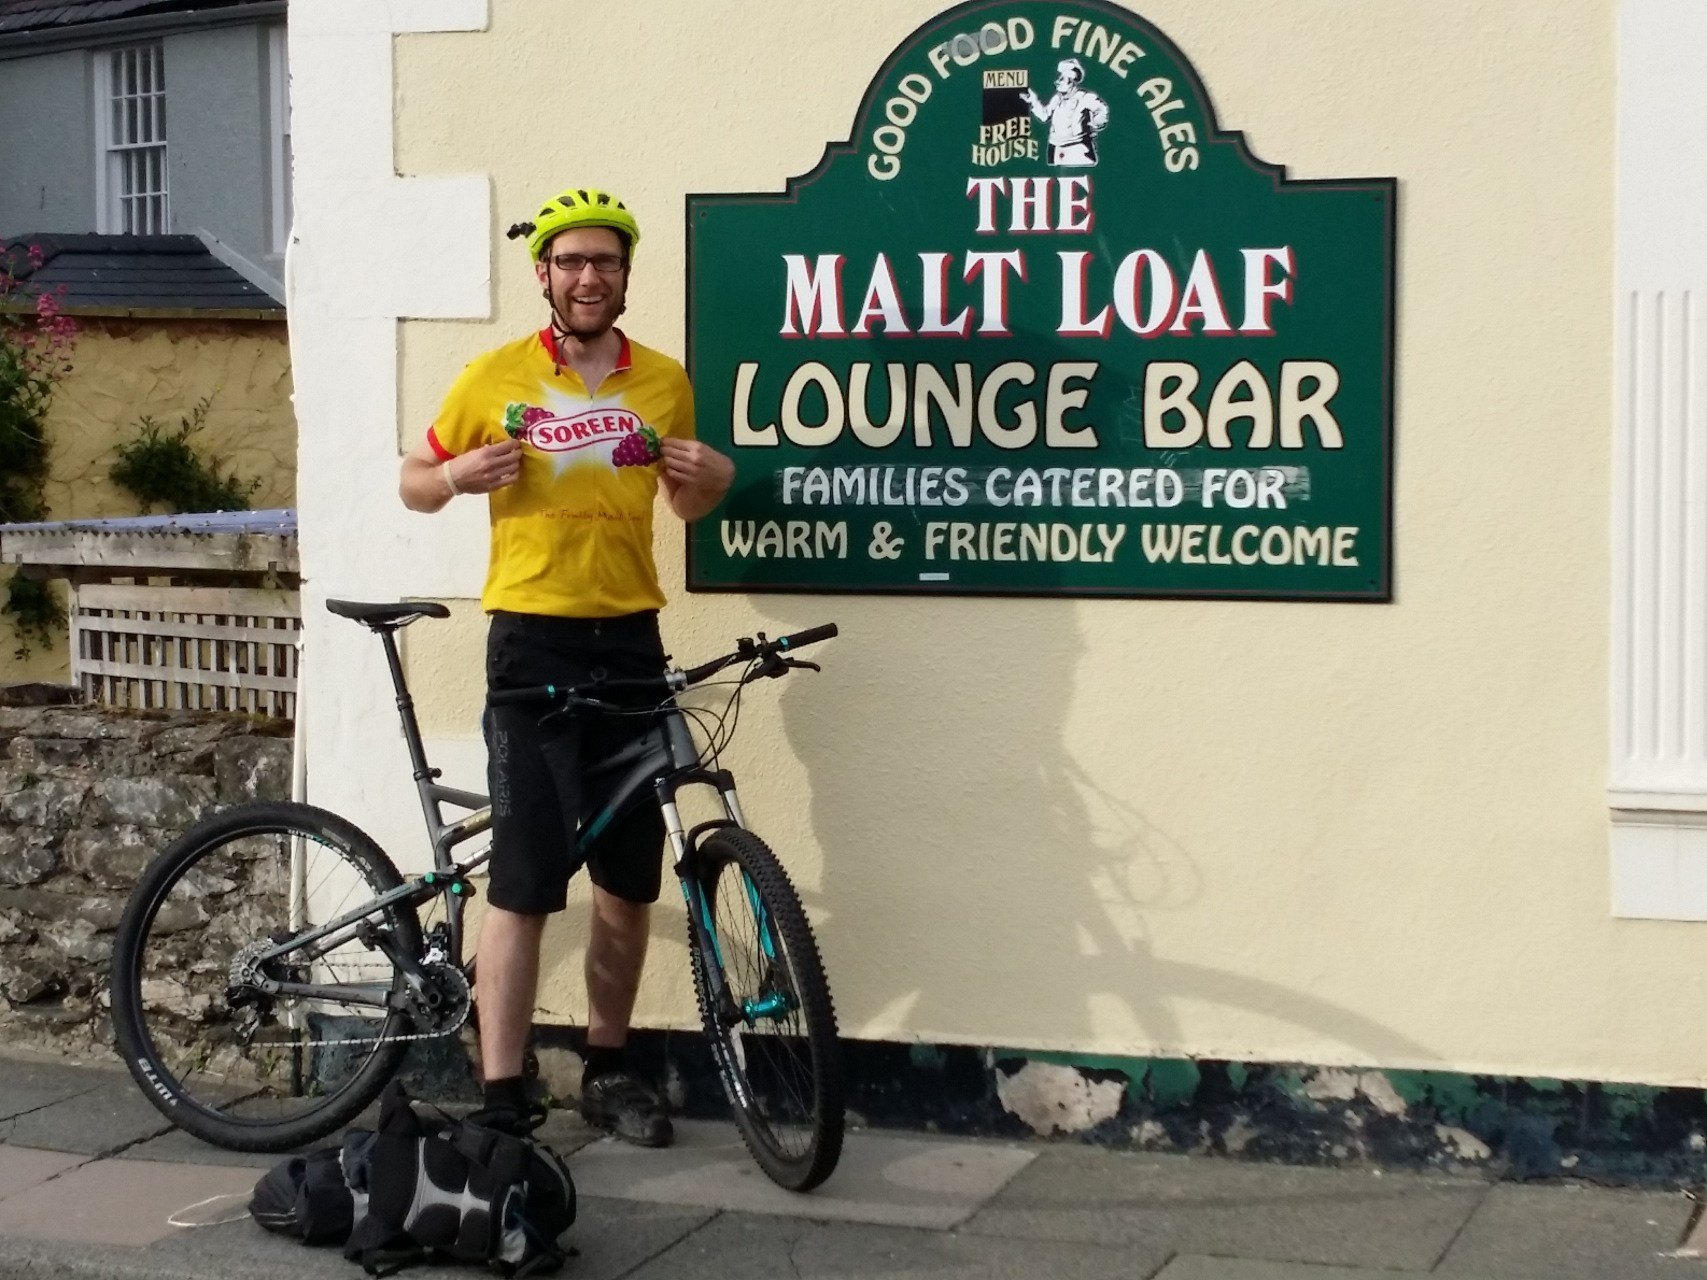 Day 0 - Arriving in Conwy ... possible Malt Loaf sponsorship opportunity...